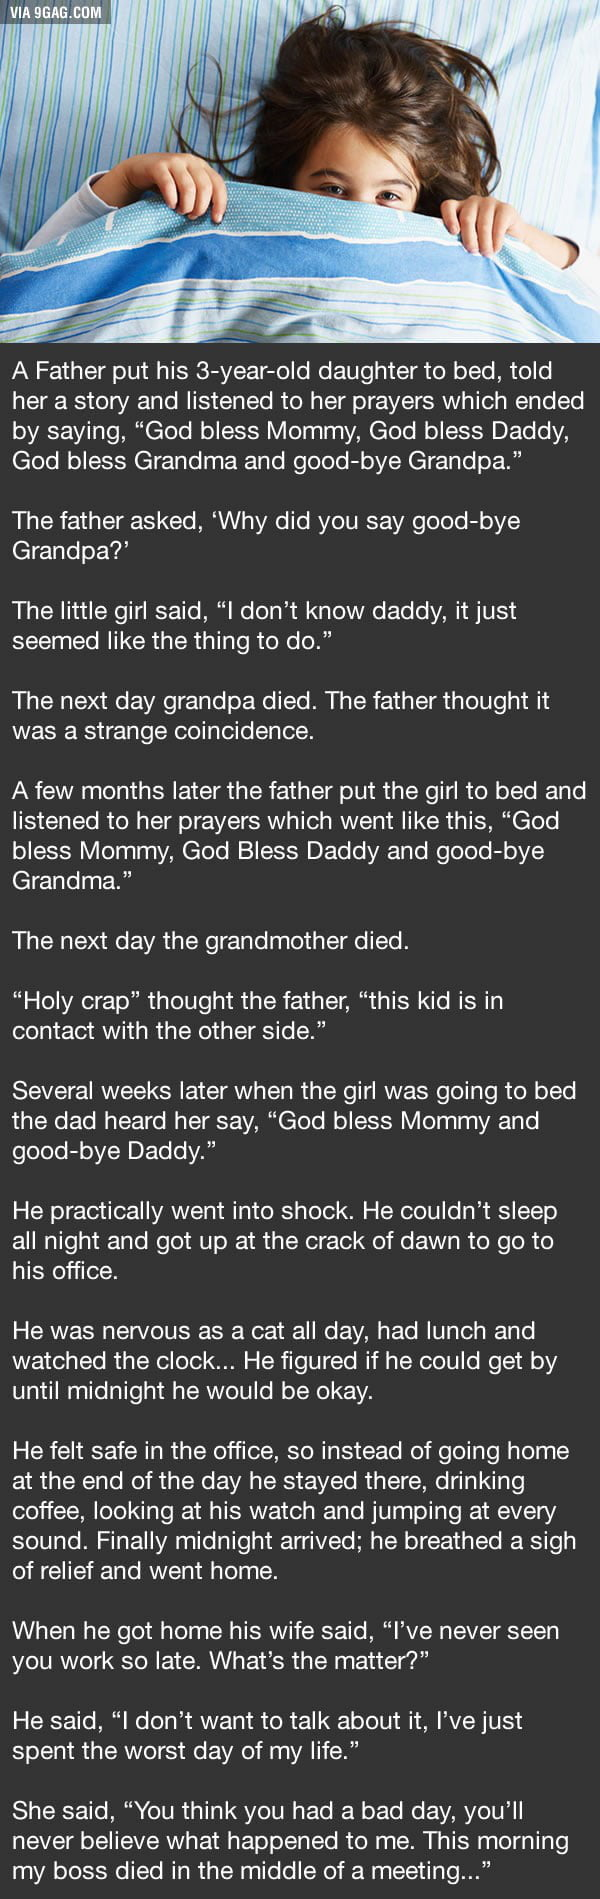 A father put his 3 year old daughter to bed...